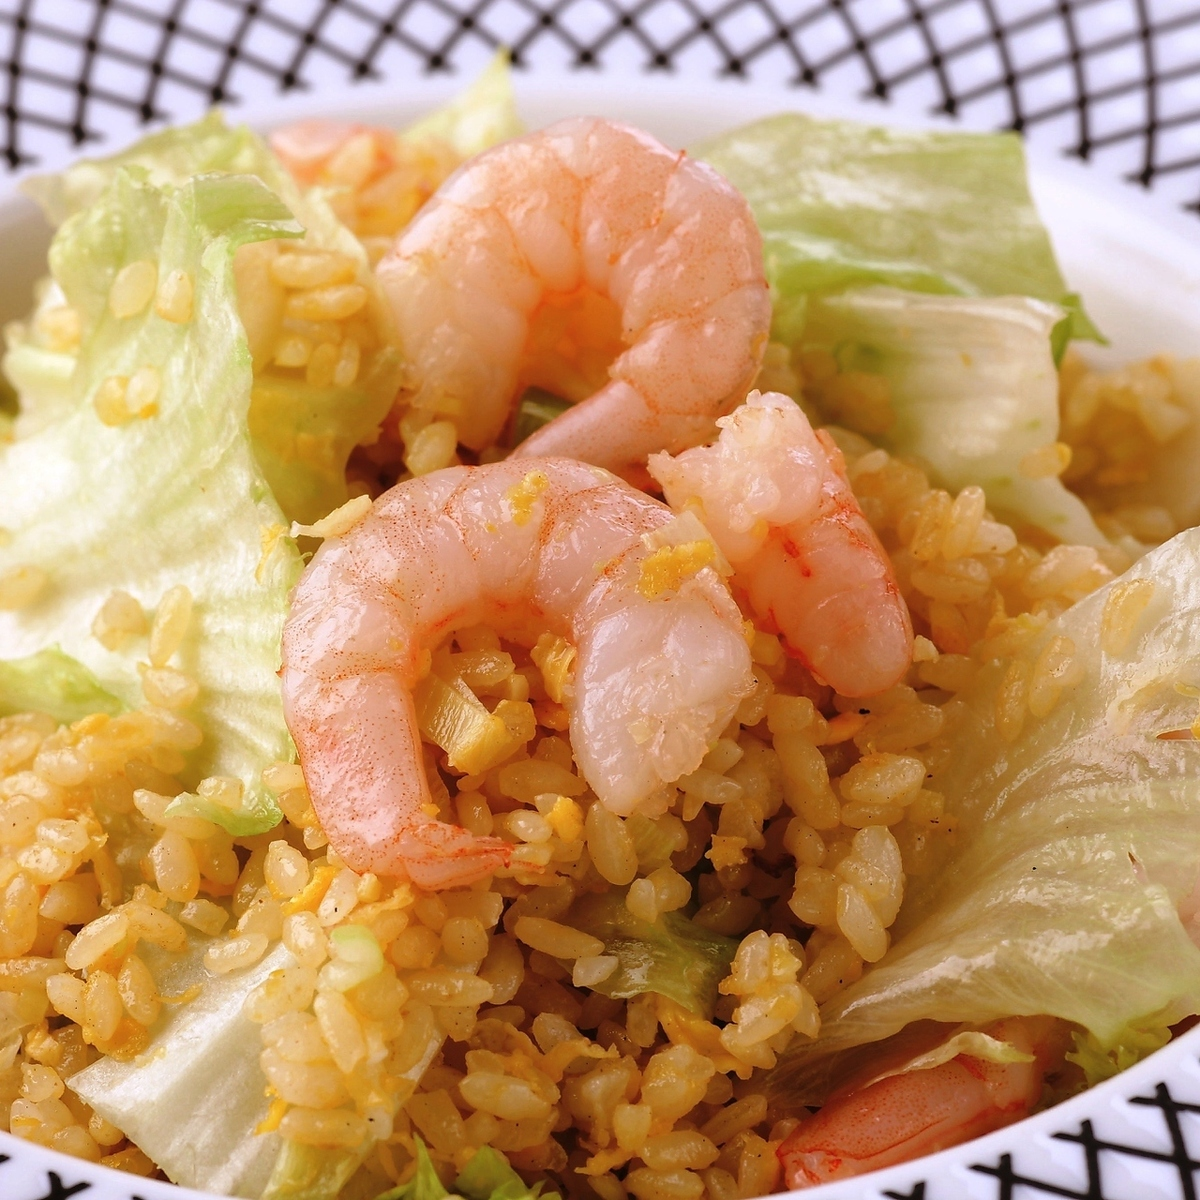 Fried rice with fried shrimp